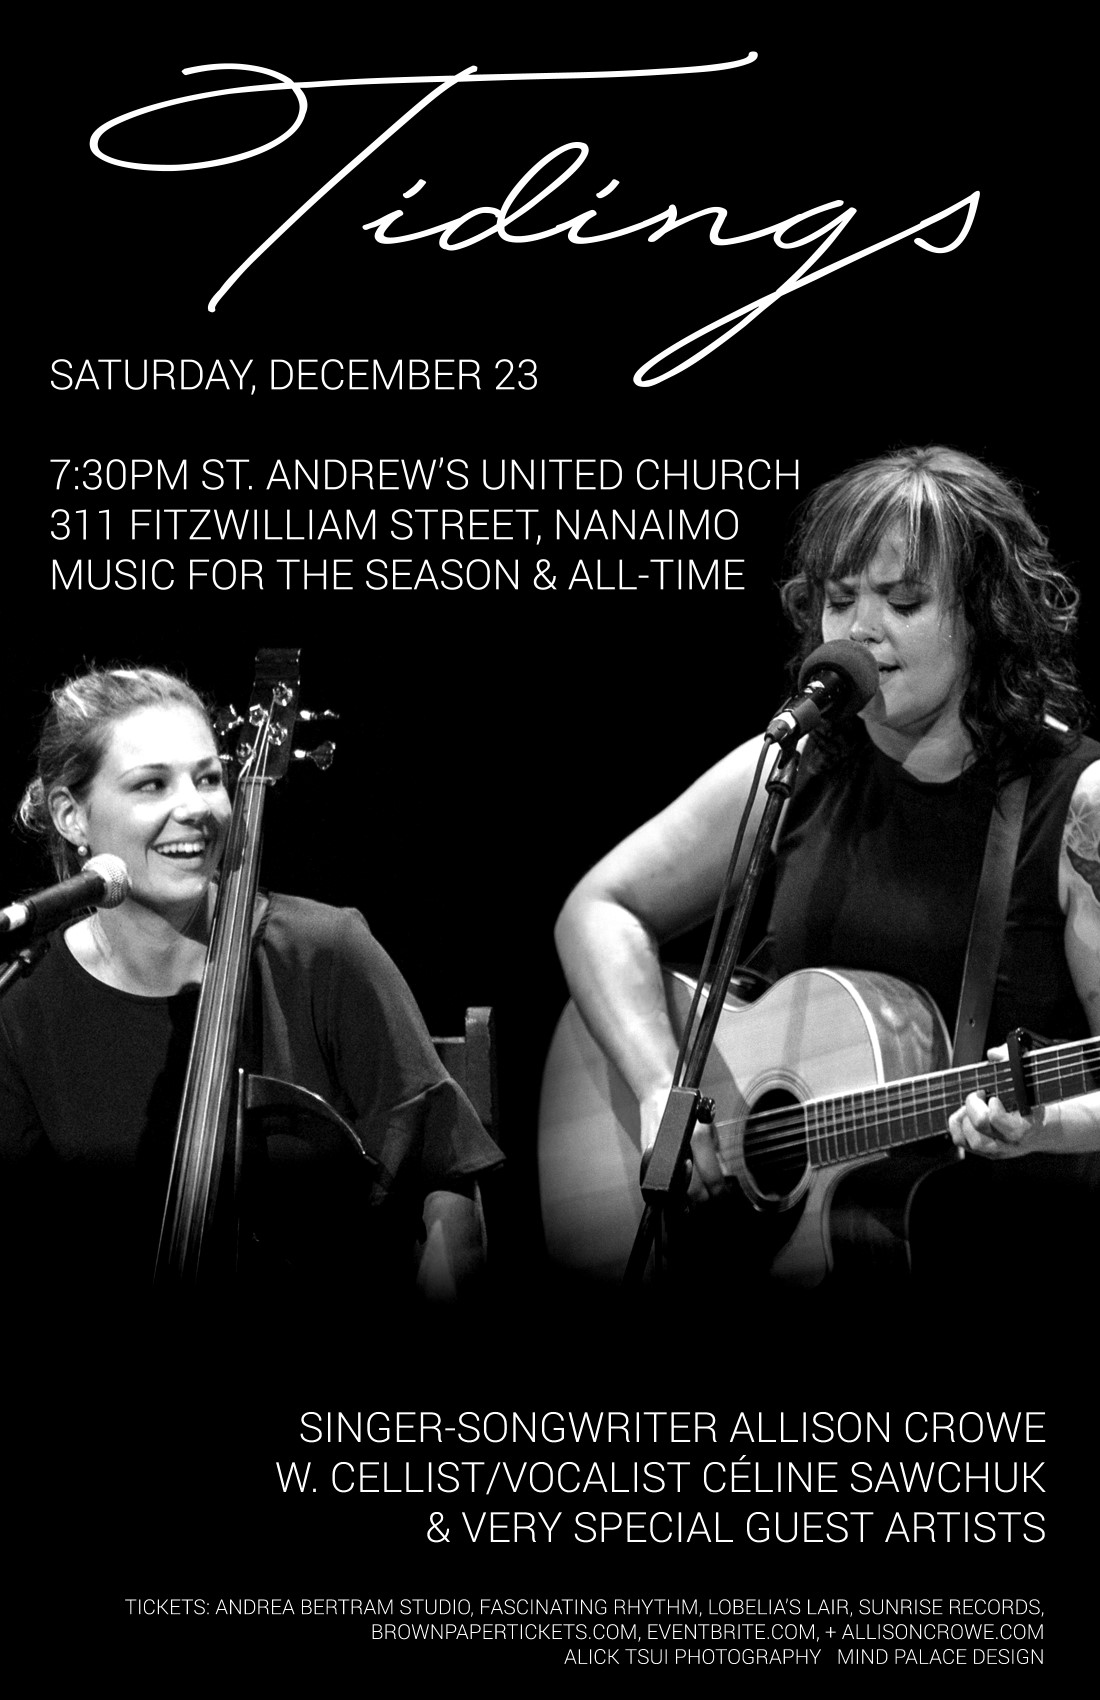 Nanaimo Tidings - Allison Crowe, Celine Sawchuk & Super Special Guests